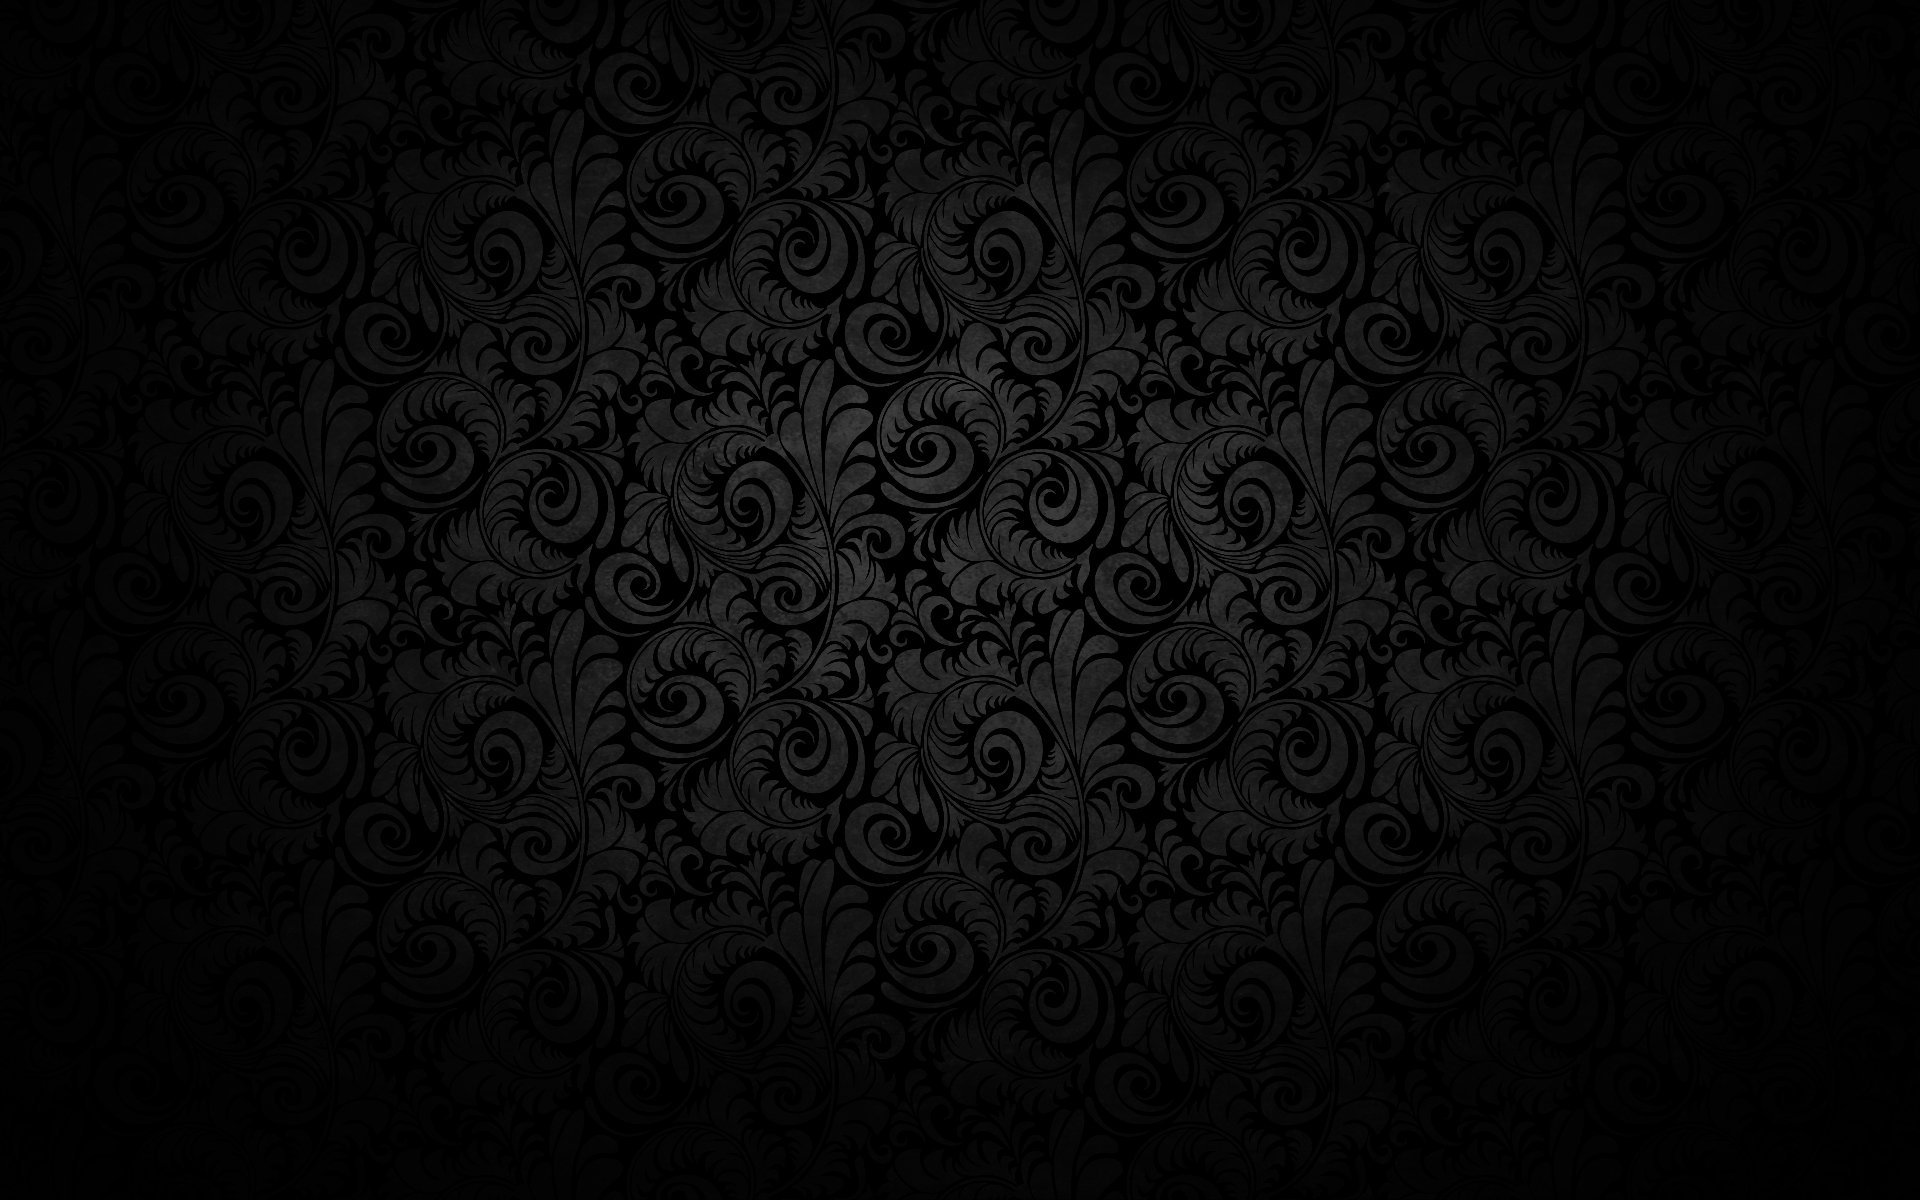 Black Backgrounds Wallpaper 1920x1200 362